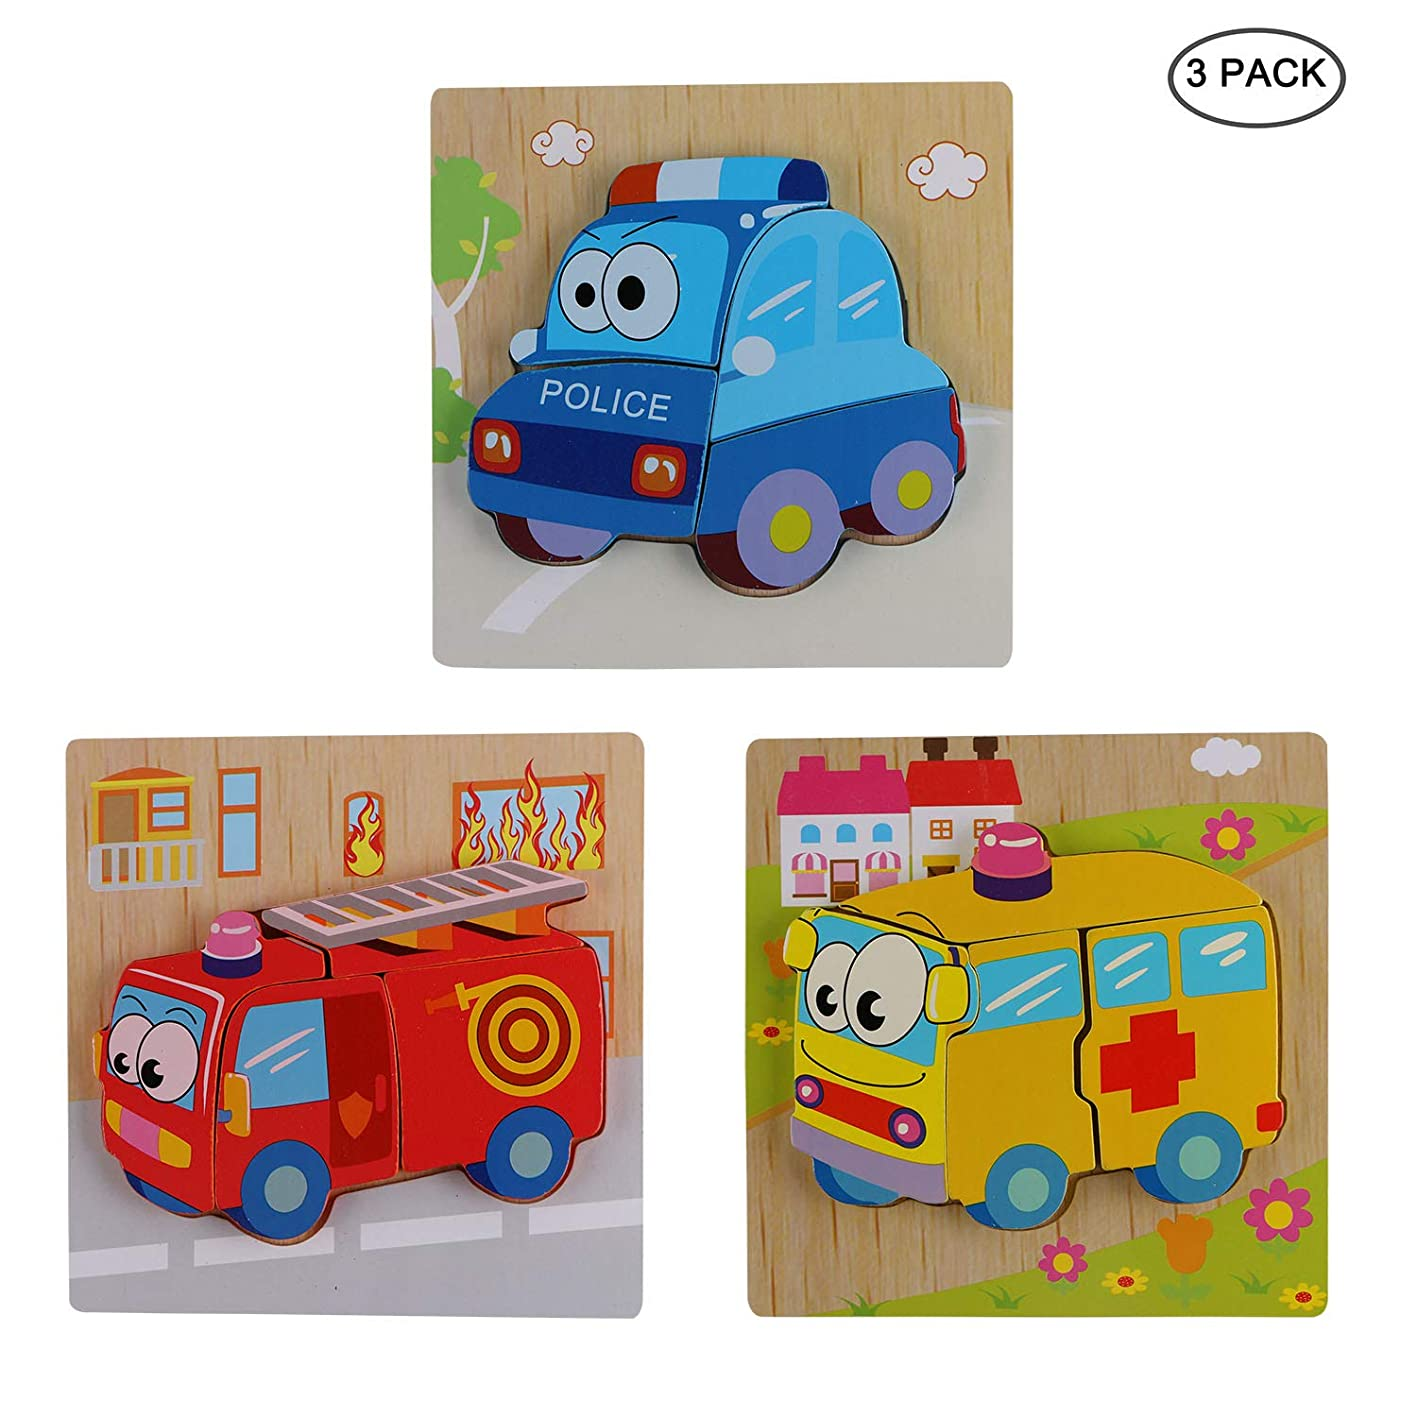 CABAX Wooden Animal Vehicles Jigsaw Puzzles for Toddlers 1 2 3 4 5 Years Old, Boys & Girls Educational Toys Gift with 3 Patterns, Bright Vibrant Color Shapes-Vehicle StyleB fvmjxunoifm207